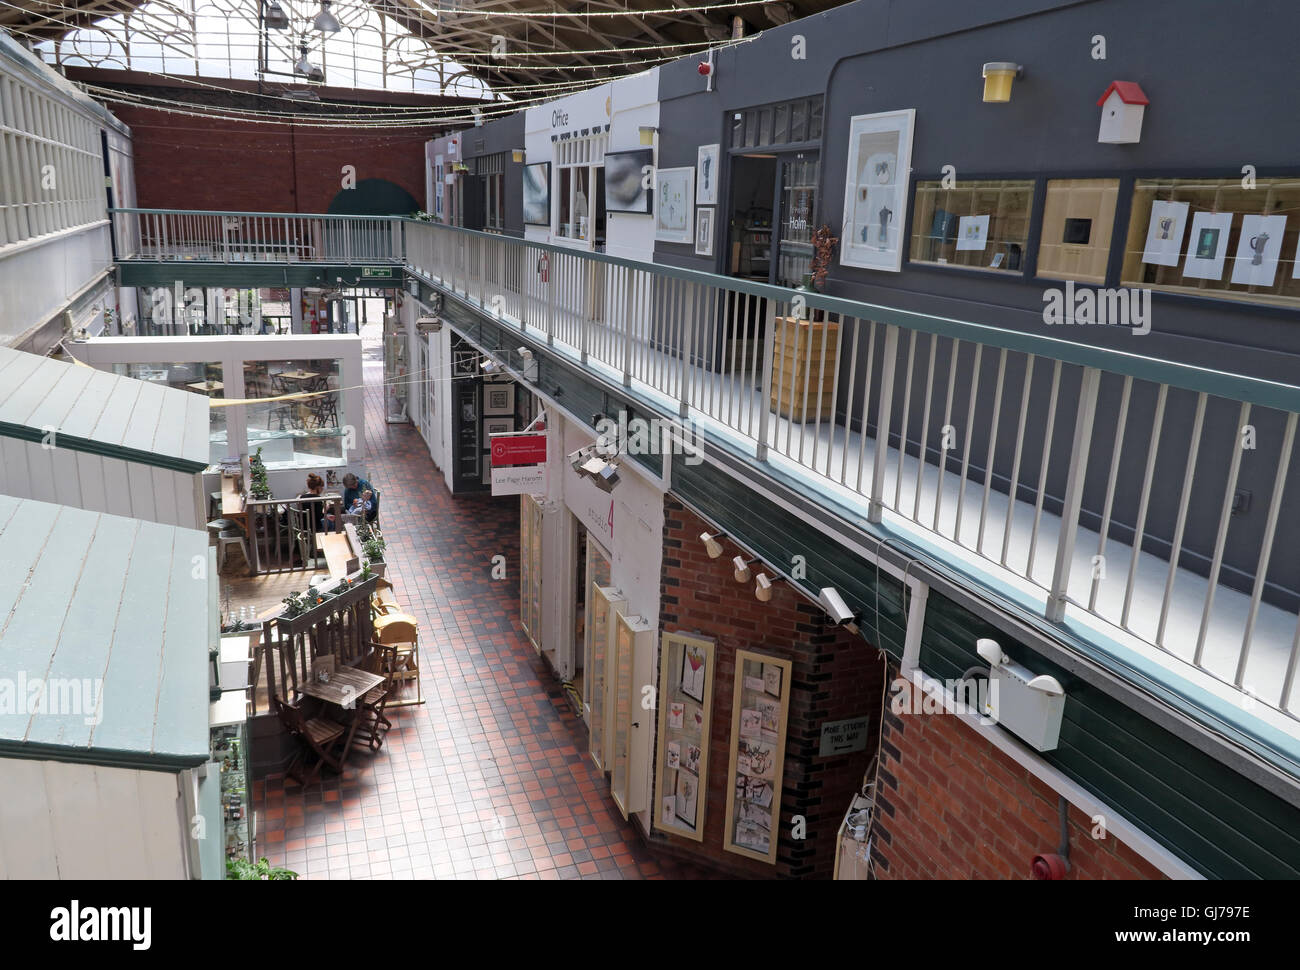 Manchester Craft and Design Centre, 17 Oak St, Manchester, UK M4 5JD - Stock Image